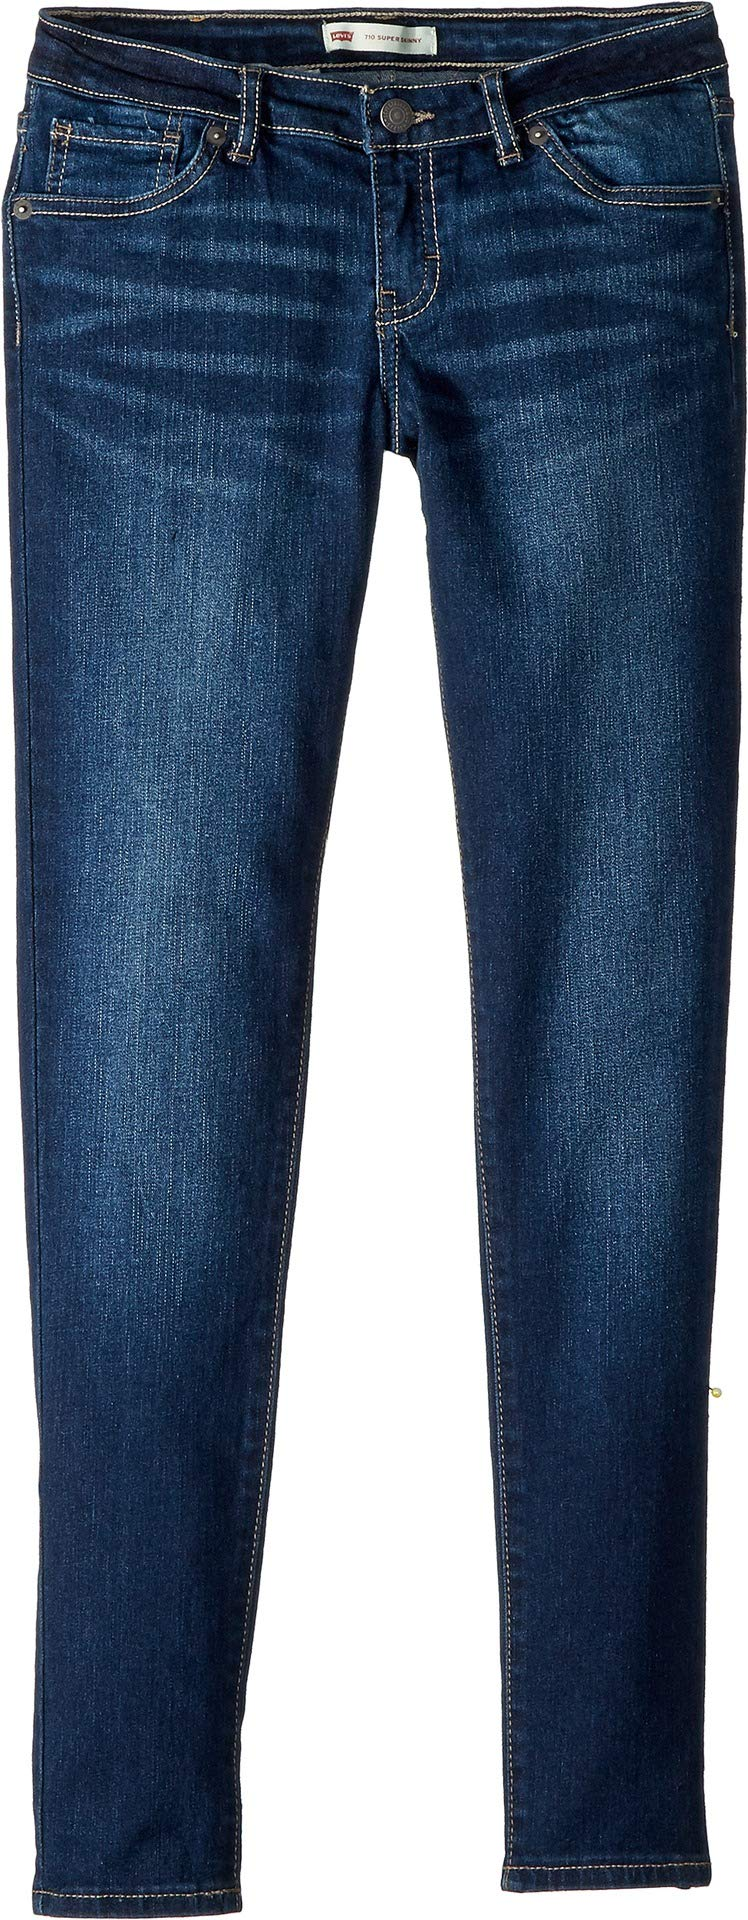 Levi's Girls' Big 710 Super Skinny Fit Jeans, Atomic, 14 by Levi's (Image #1)